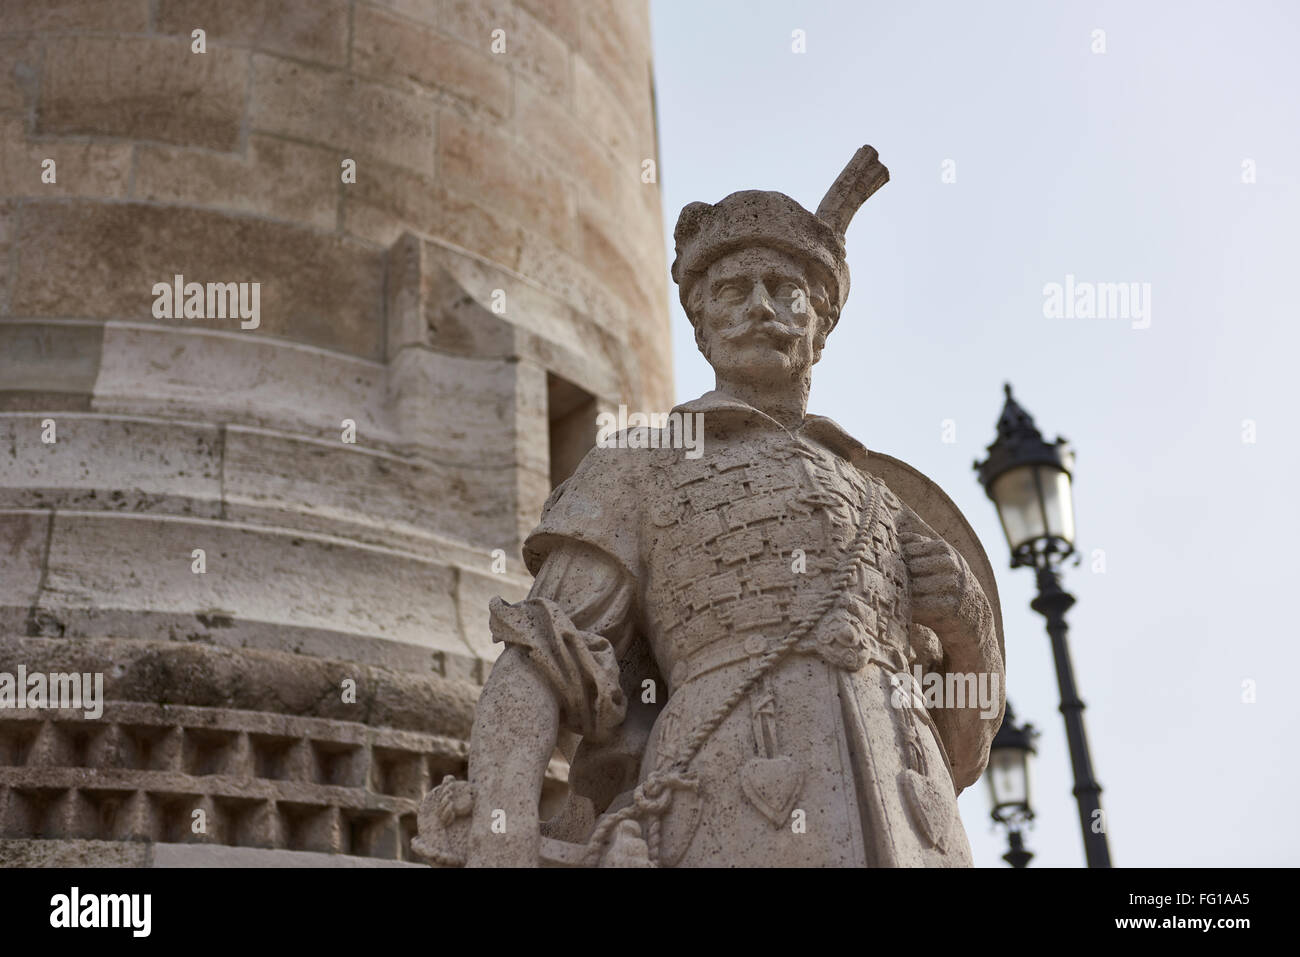 BUDAPEST, HUNGARY - FEBRUARY 02: Detail of stone soldier statue in one of the spires at Fisherman's Bastion, in Stock Photo